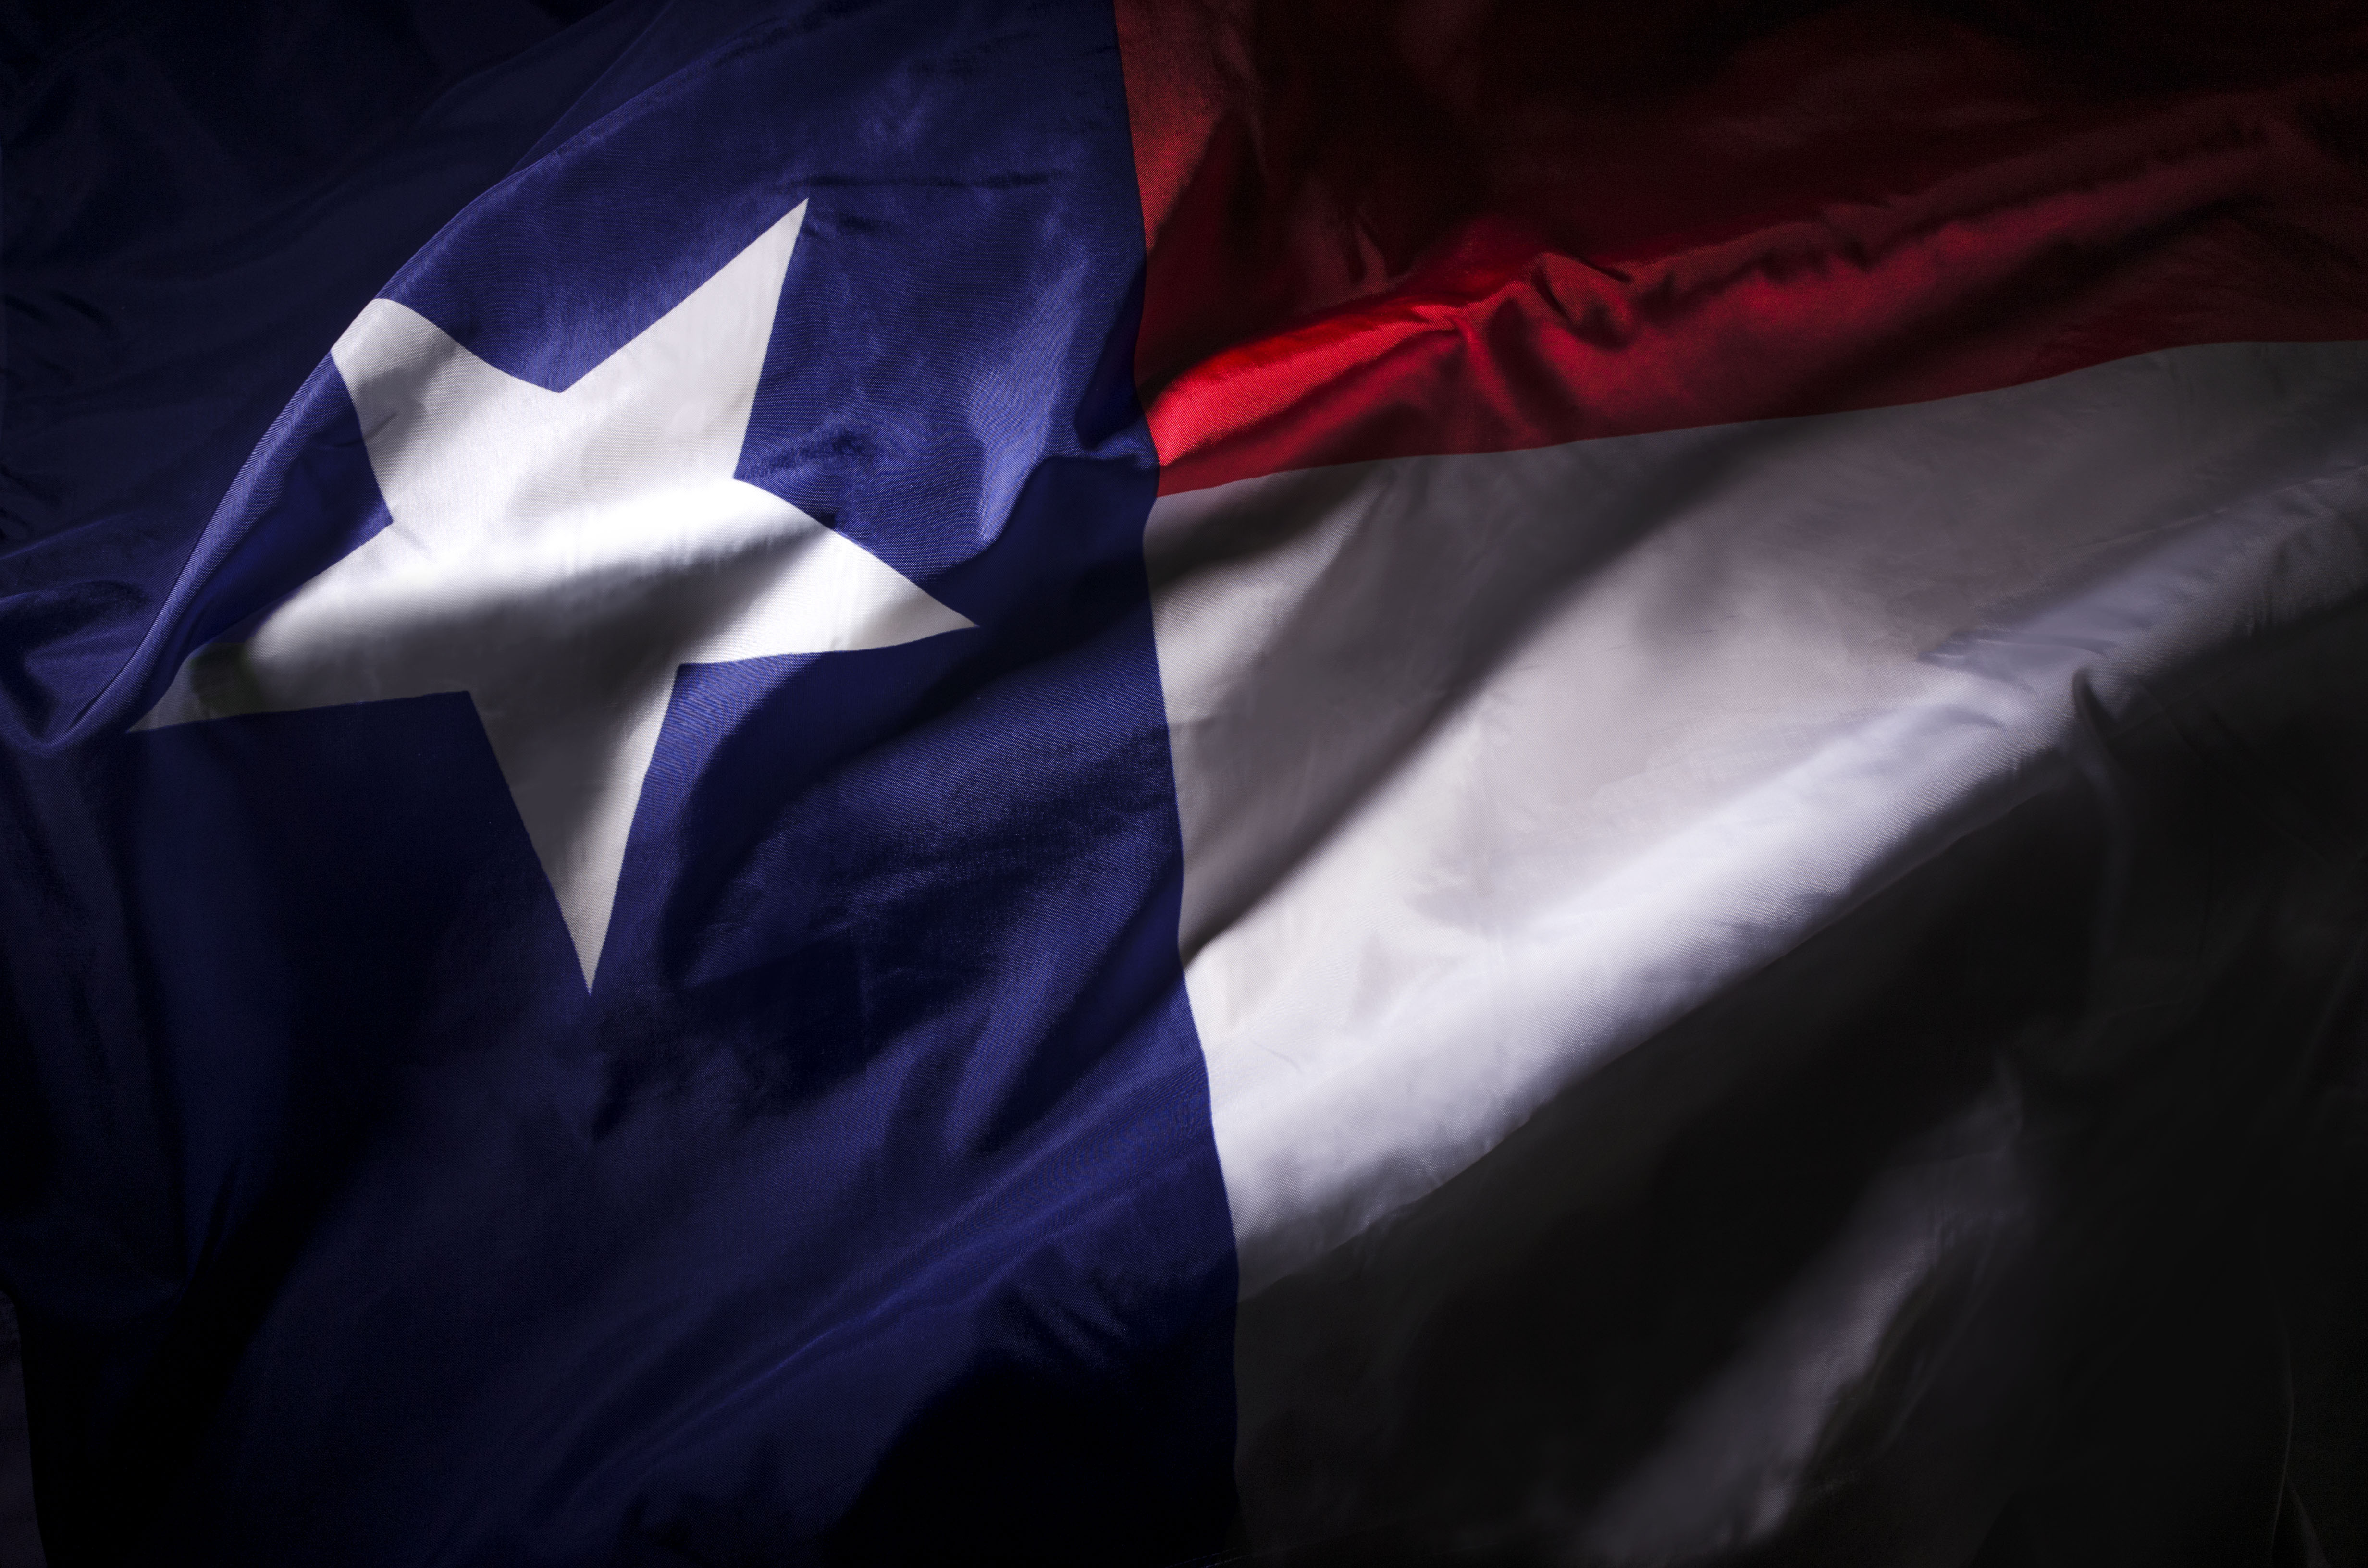 42 Percent of Texans Want to Make Bitcoin Official Currency: Poll